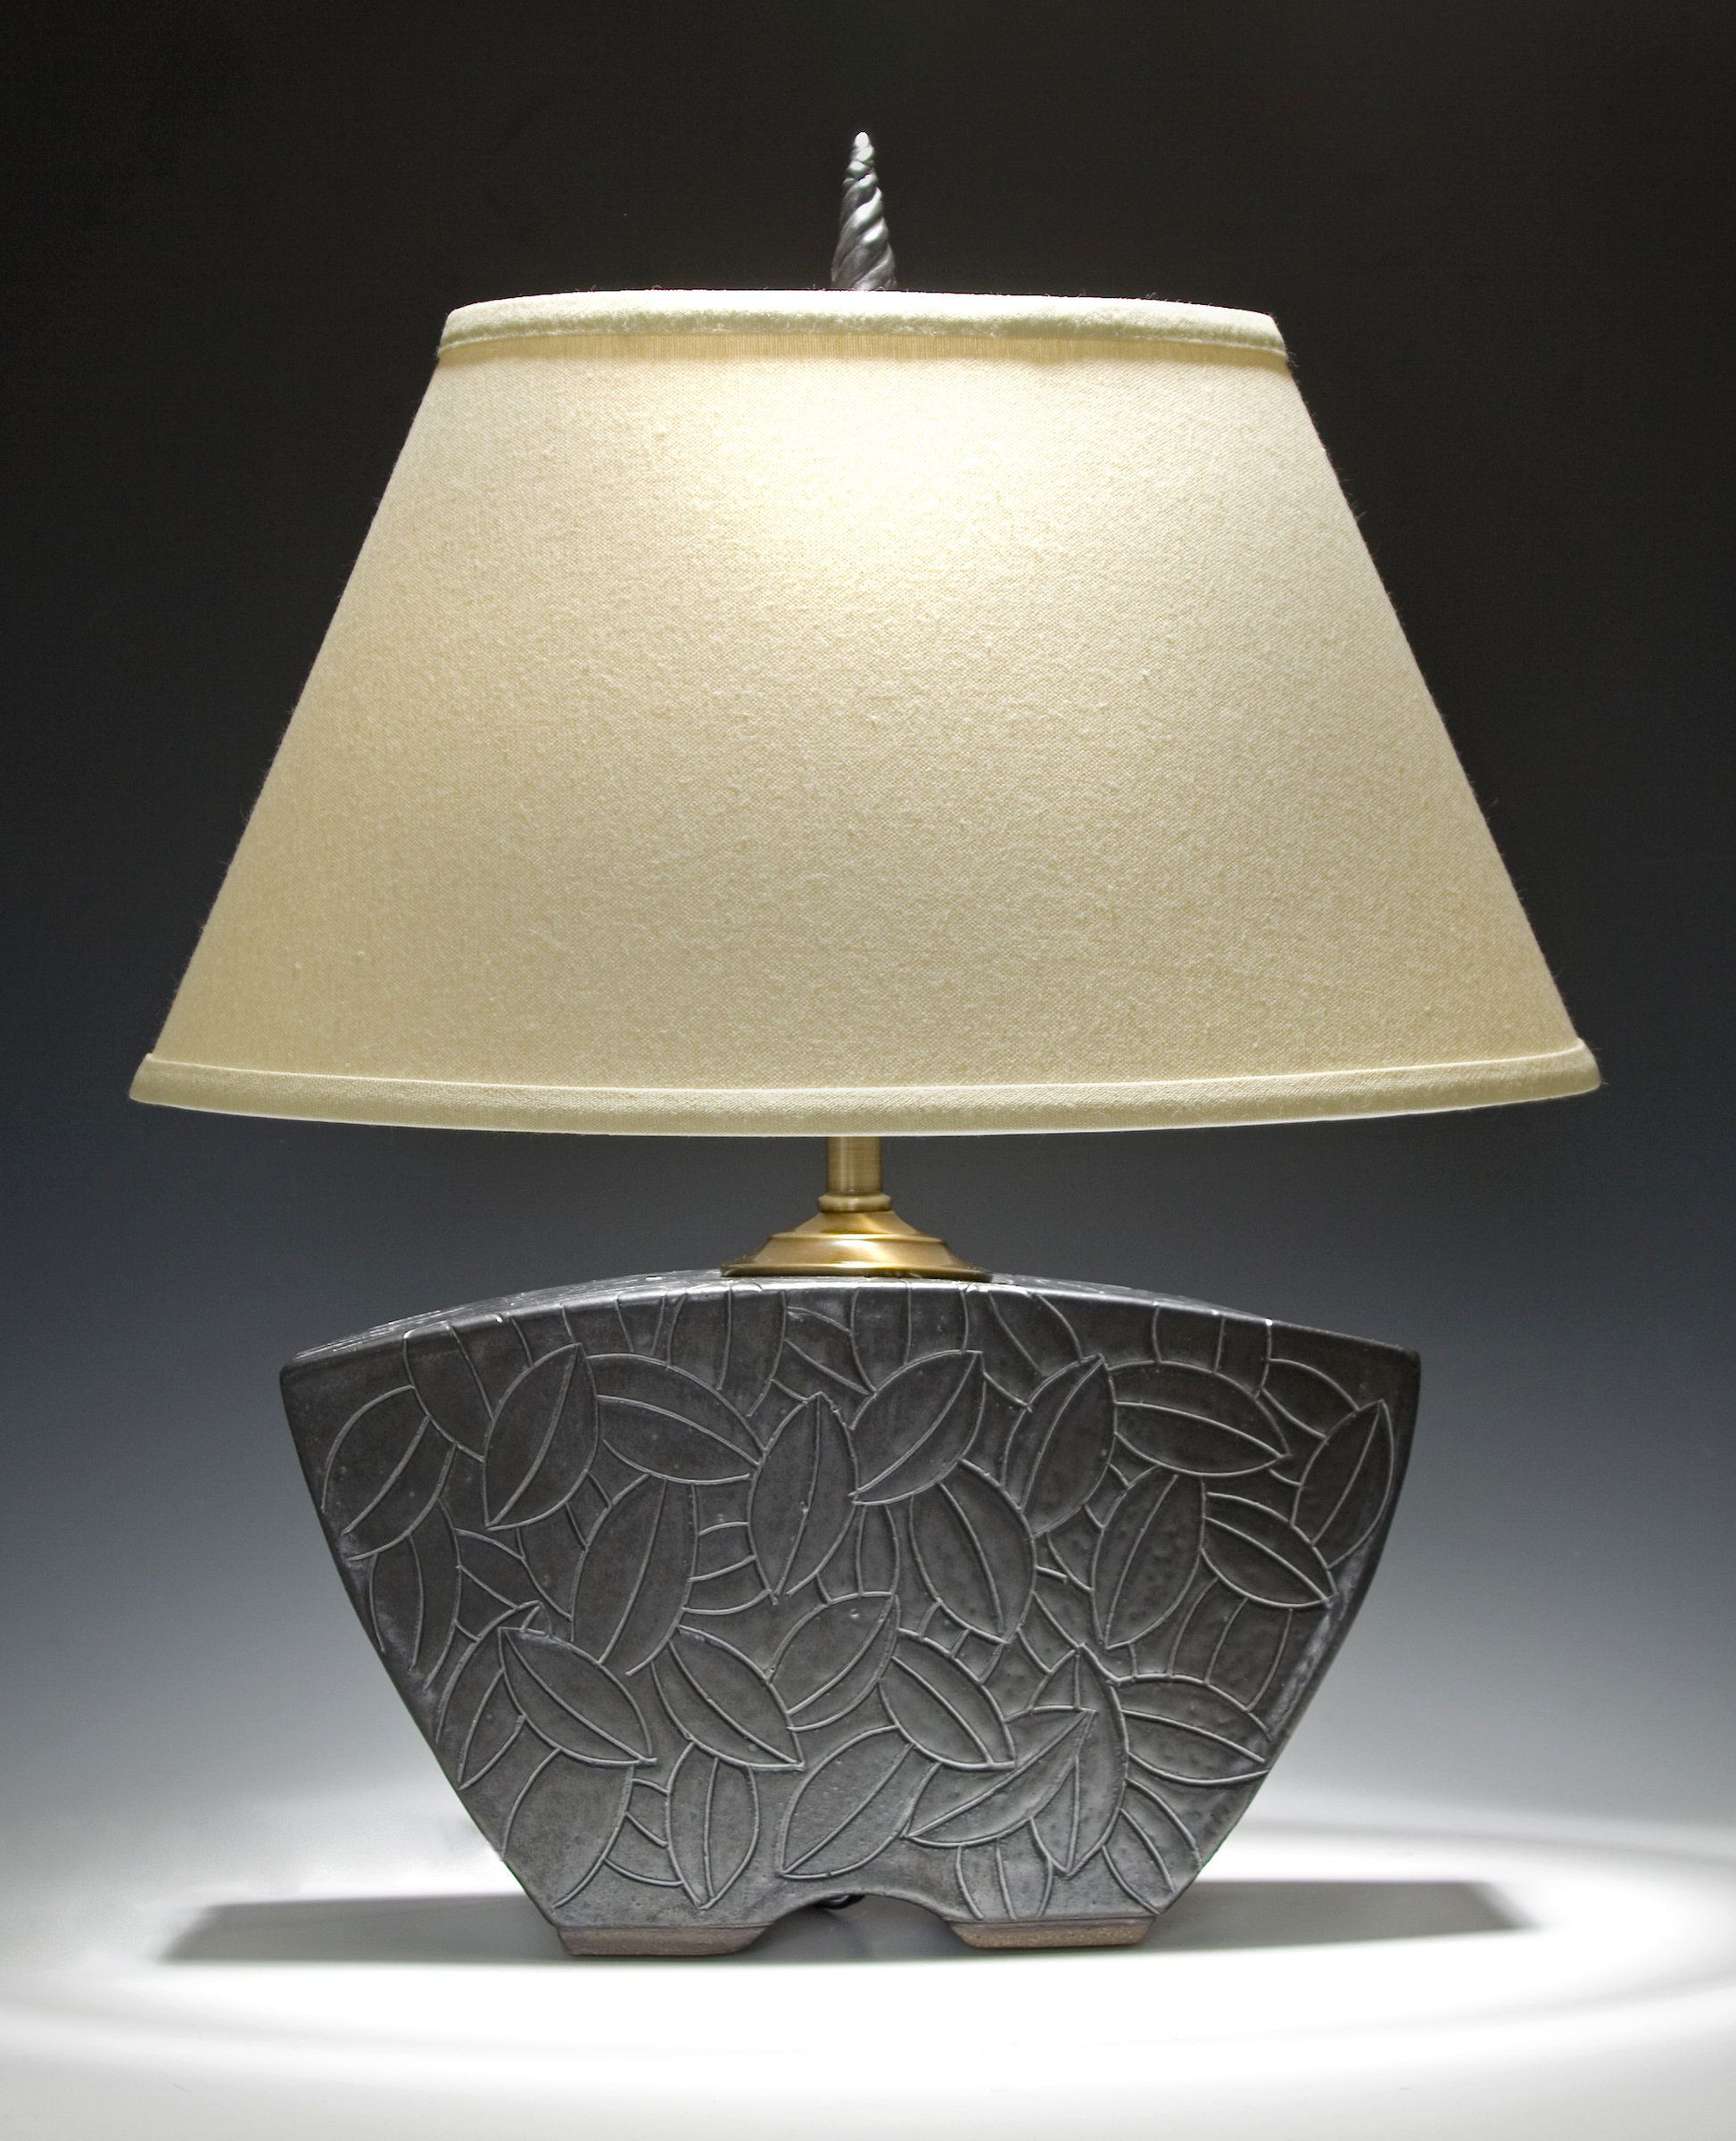 Charming Keystone Lamp By Jim And Shirl Parmentier (Ceramic Table Lamp